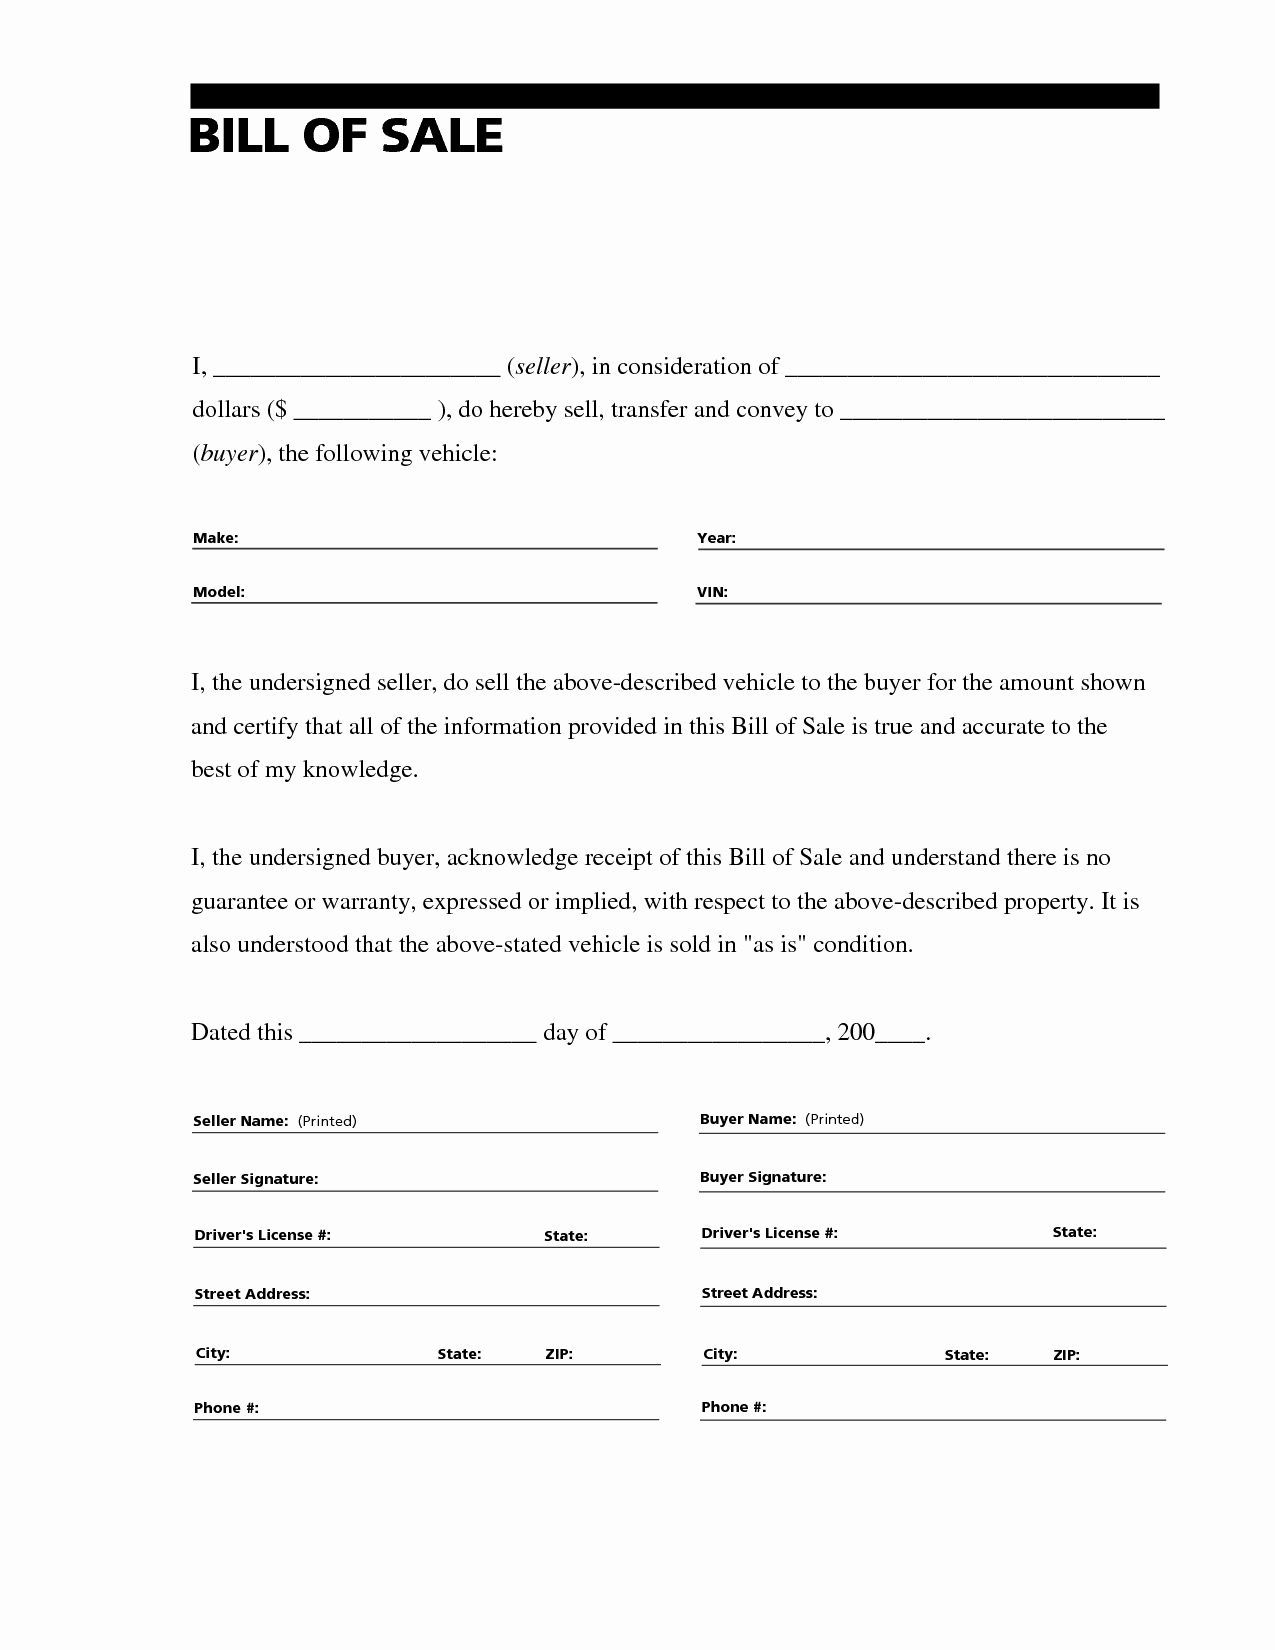 Form Of Bill Of Sale Elegant Free Printable Auto Bill Of Sale Form Generic Bill Of Sale Car Bill Of Sale Template Word Template